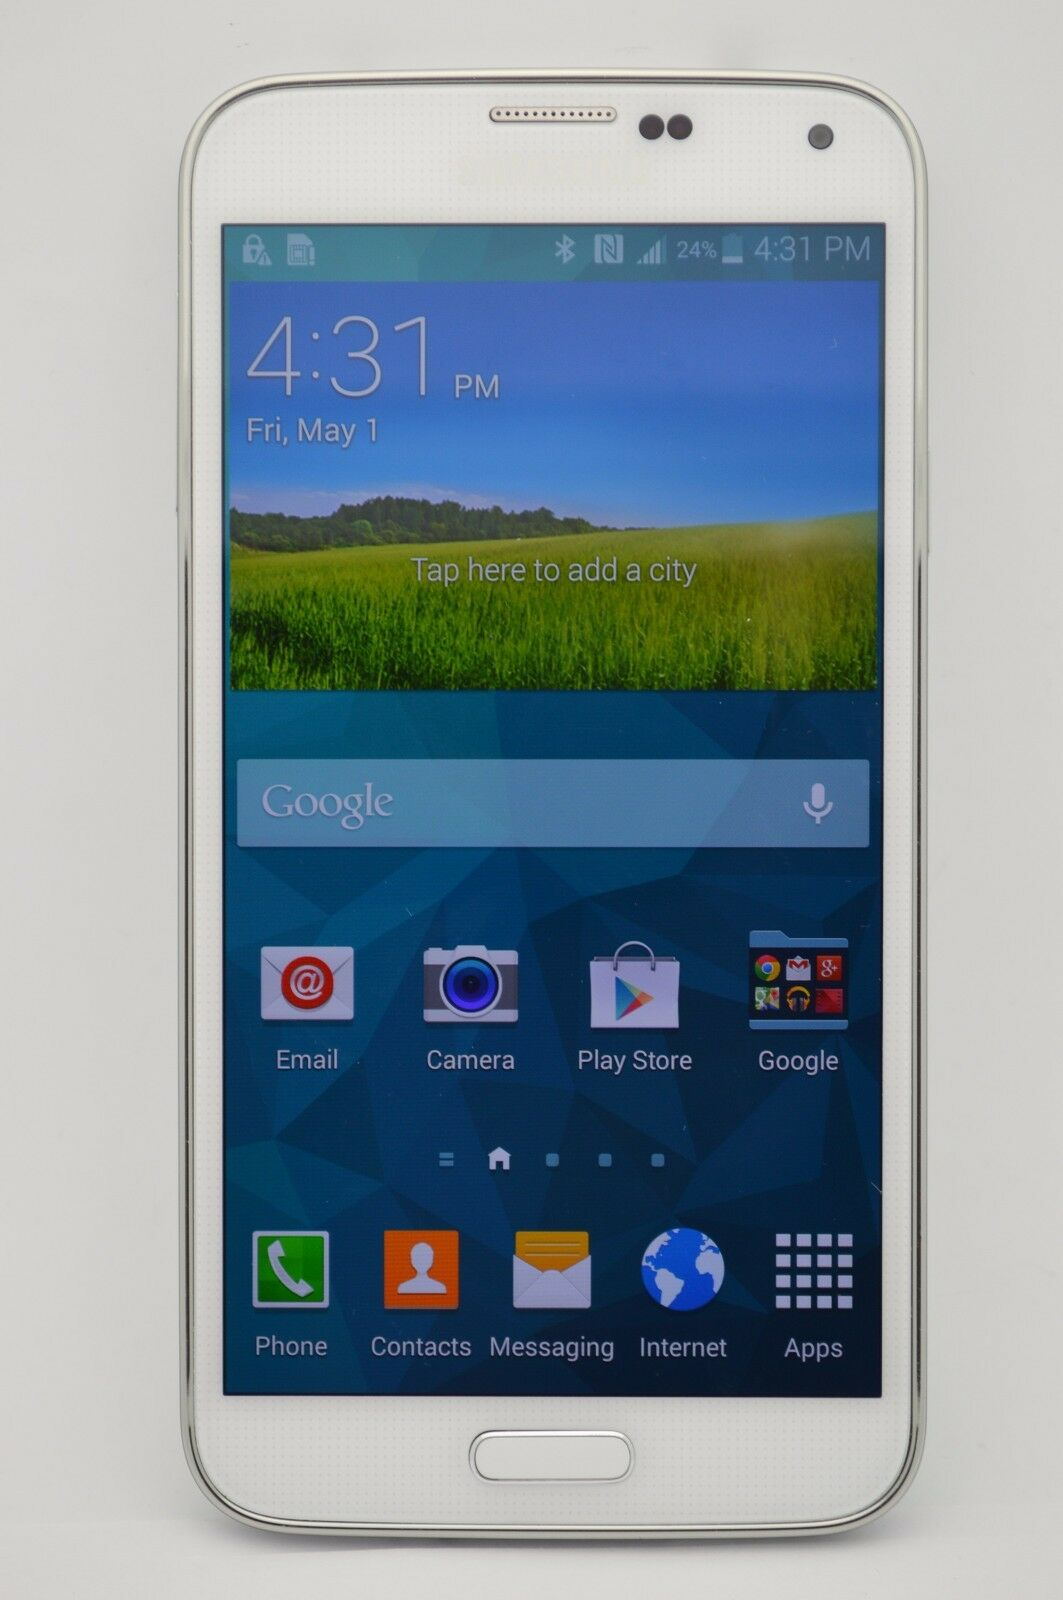 Jan 09, · The Samsung Galaxy S5 was announced in and was the company's first flagship of the year. The device featured a inch display with a resolution of x , 2GB of RAM, 16GB of storage, and a 16MP primary rear camera.